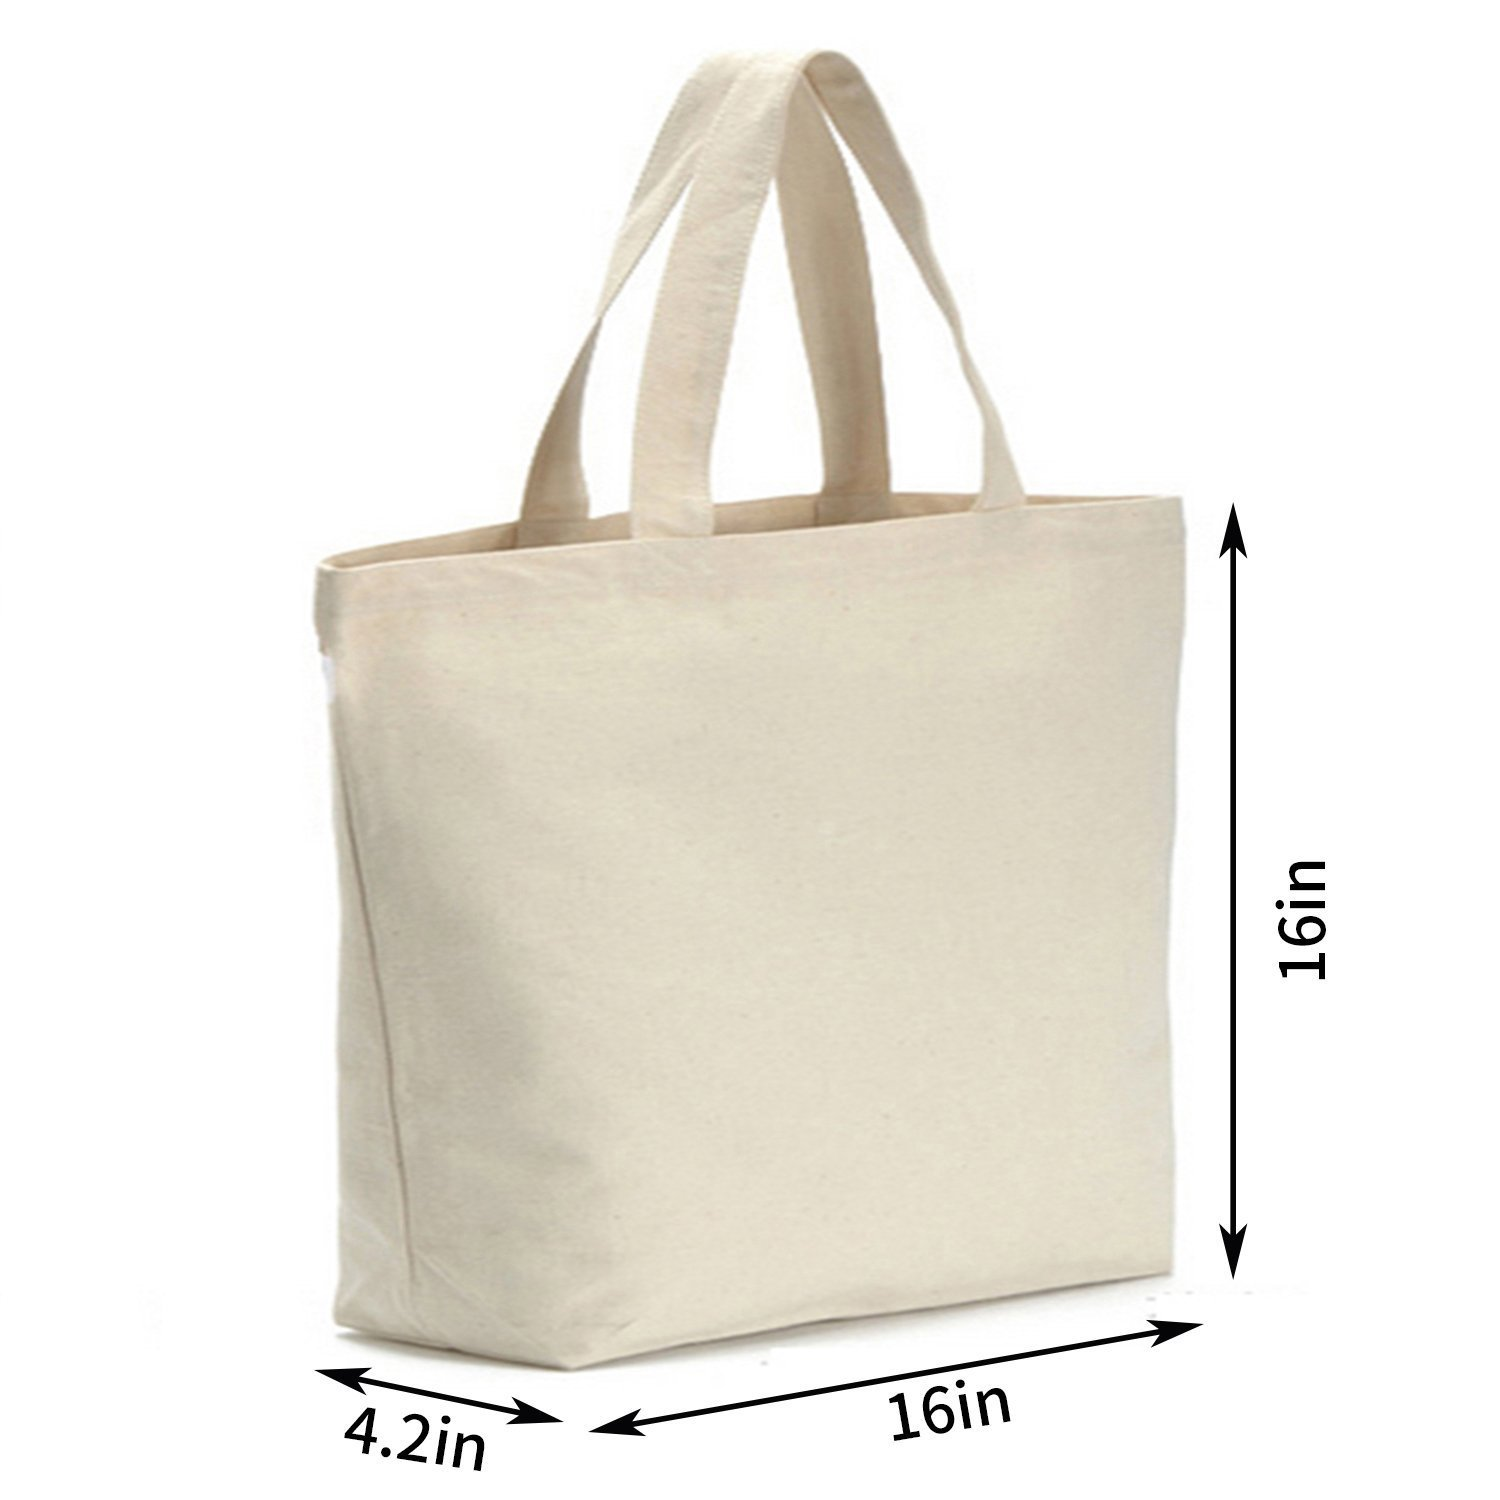 Axe Sickle 12oz Heavy Canvas Tote Bag 16'' W X 16'' H X 4.2'' Bottom Gusset (2 per pack), Tote shopping bag, Washable grocery tote bag, Craft Canvas Bag White, Cloth Bag With Handles. by Axe Sickle (Image #2)